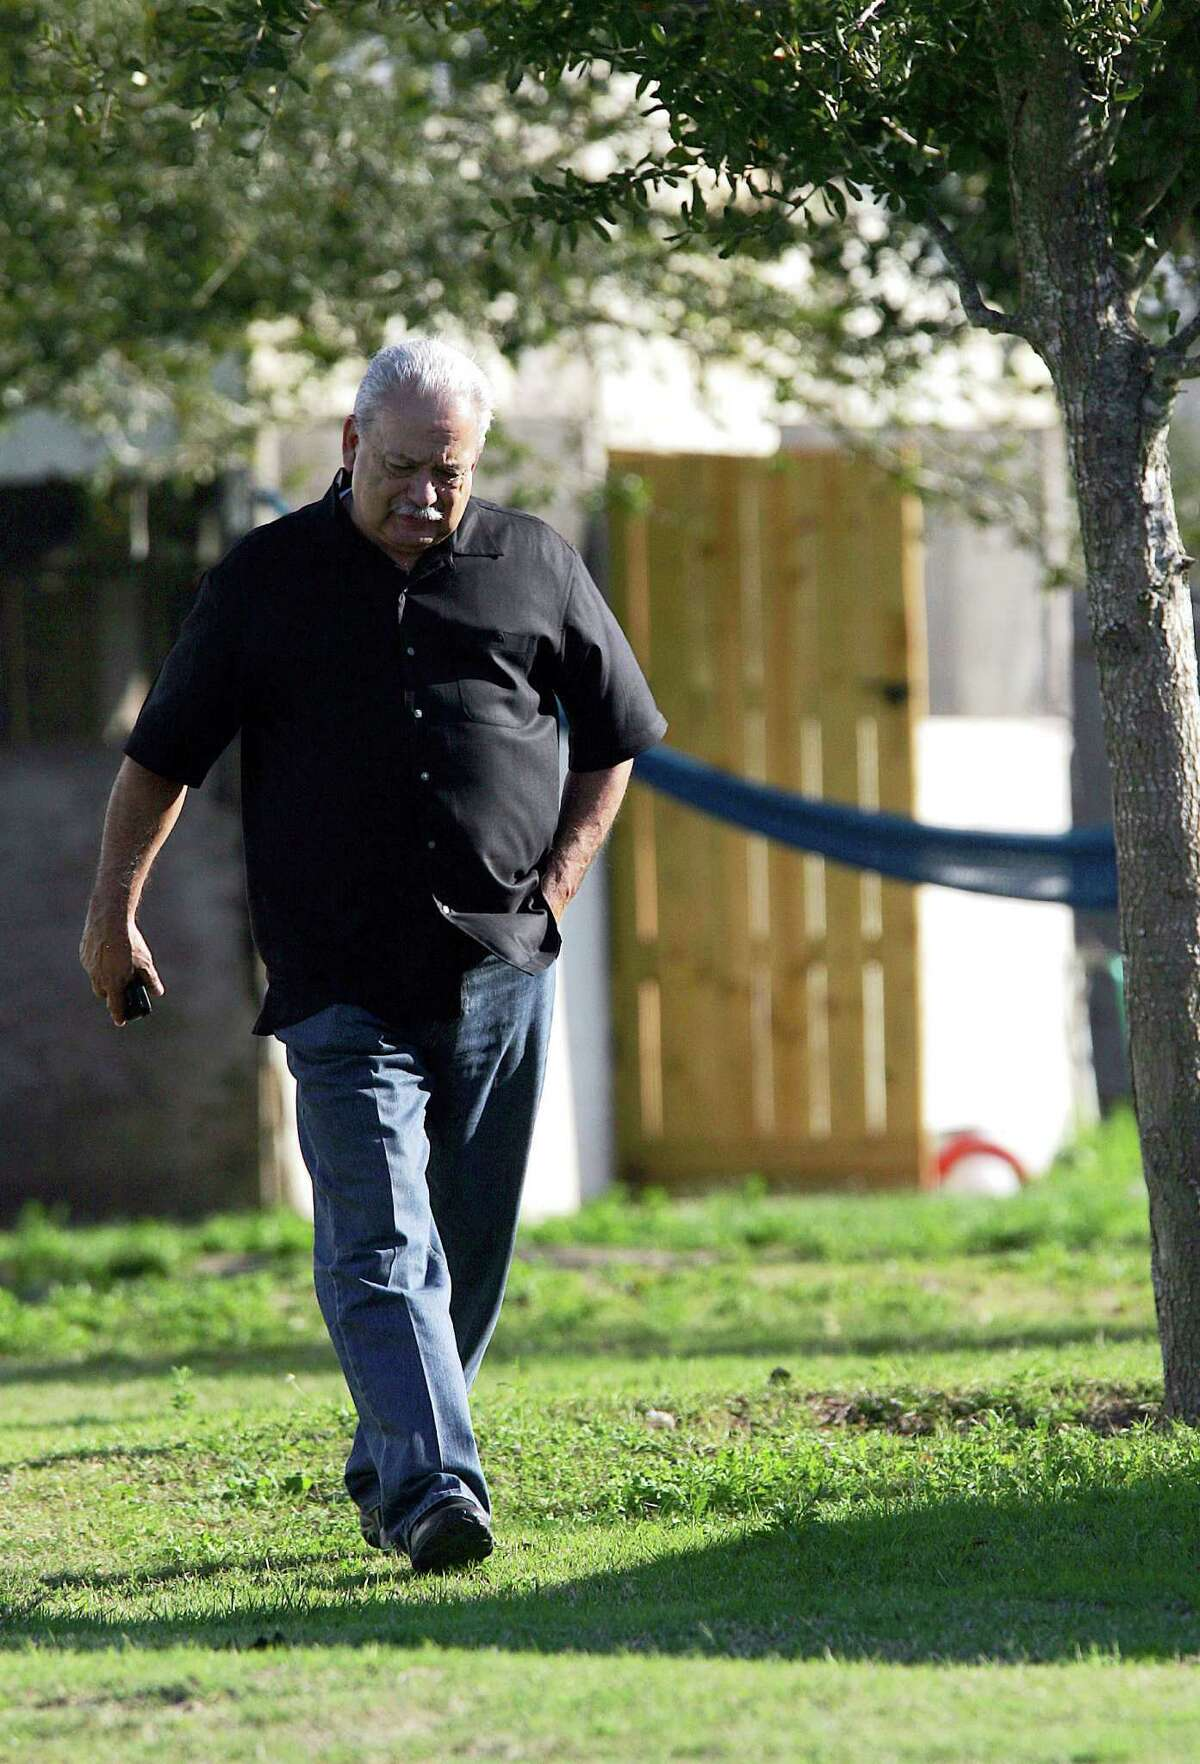 In this photo taken on Feb. 19, 2014, Hidalgo County Sheriff Lupe Trevino walks around a home that was raided north of Monte Cristo in Edinburg, Texas, as they searched for Jose Juan Mendoza after he kidnapped Juan Pedro Borjas. The Hidalgo County Sheriff office has announced Wednesday, March 26, 2014, that the Trevino's chief of staff has resigned for personal reasons, the latest high-level personnel change at an agency that has drawn the attention of federal investigators. (AP Photo/The Monitor, Gabe Hernandez) MAGS OUT; TV OUT